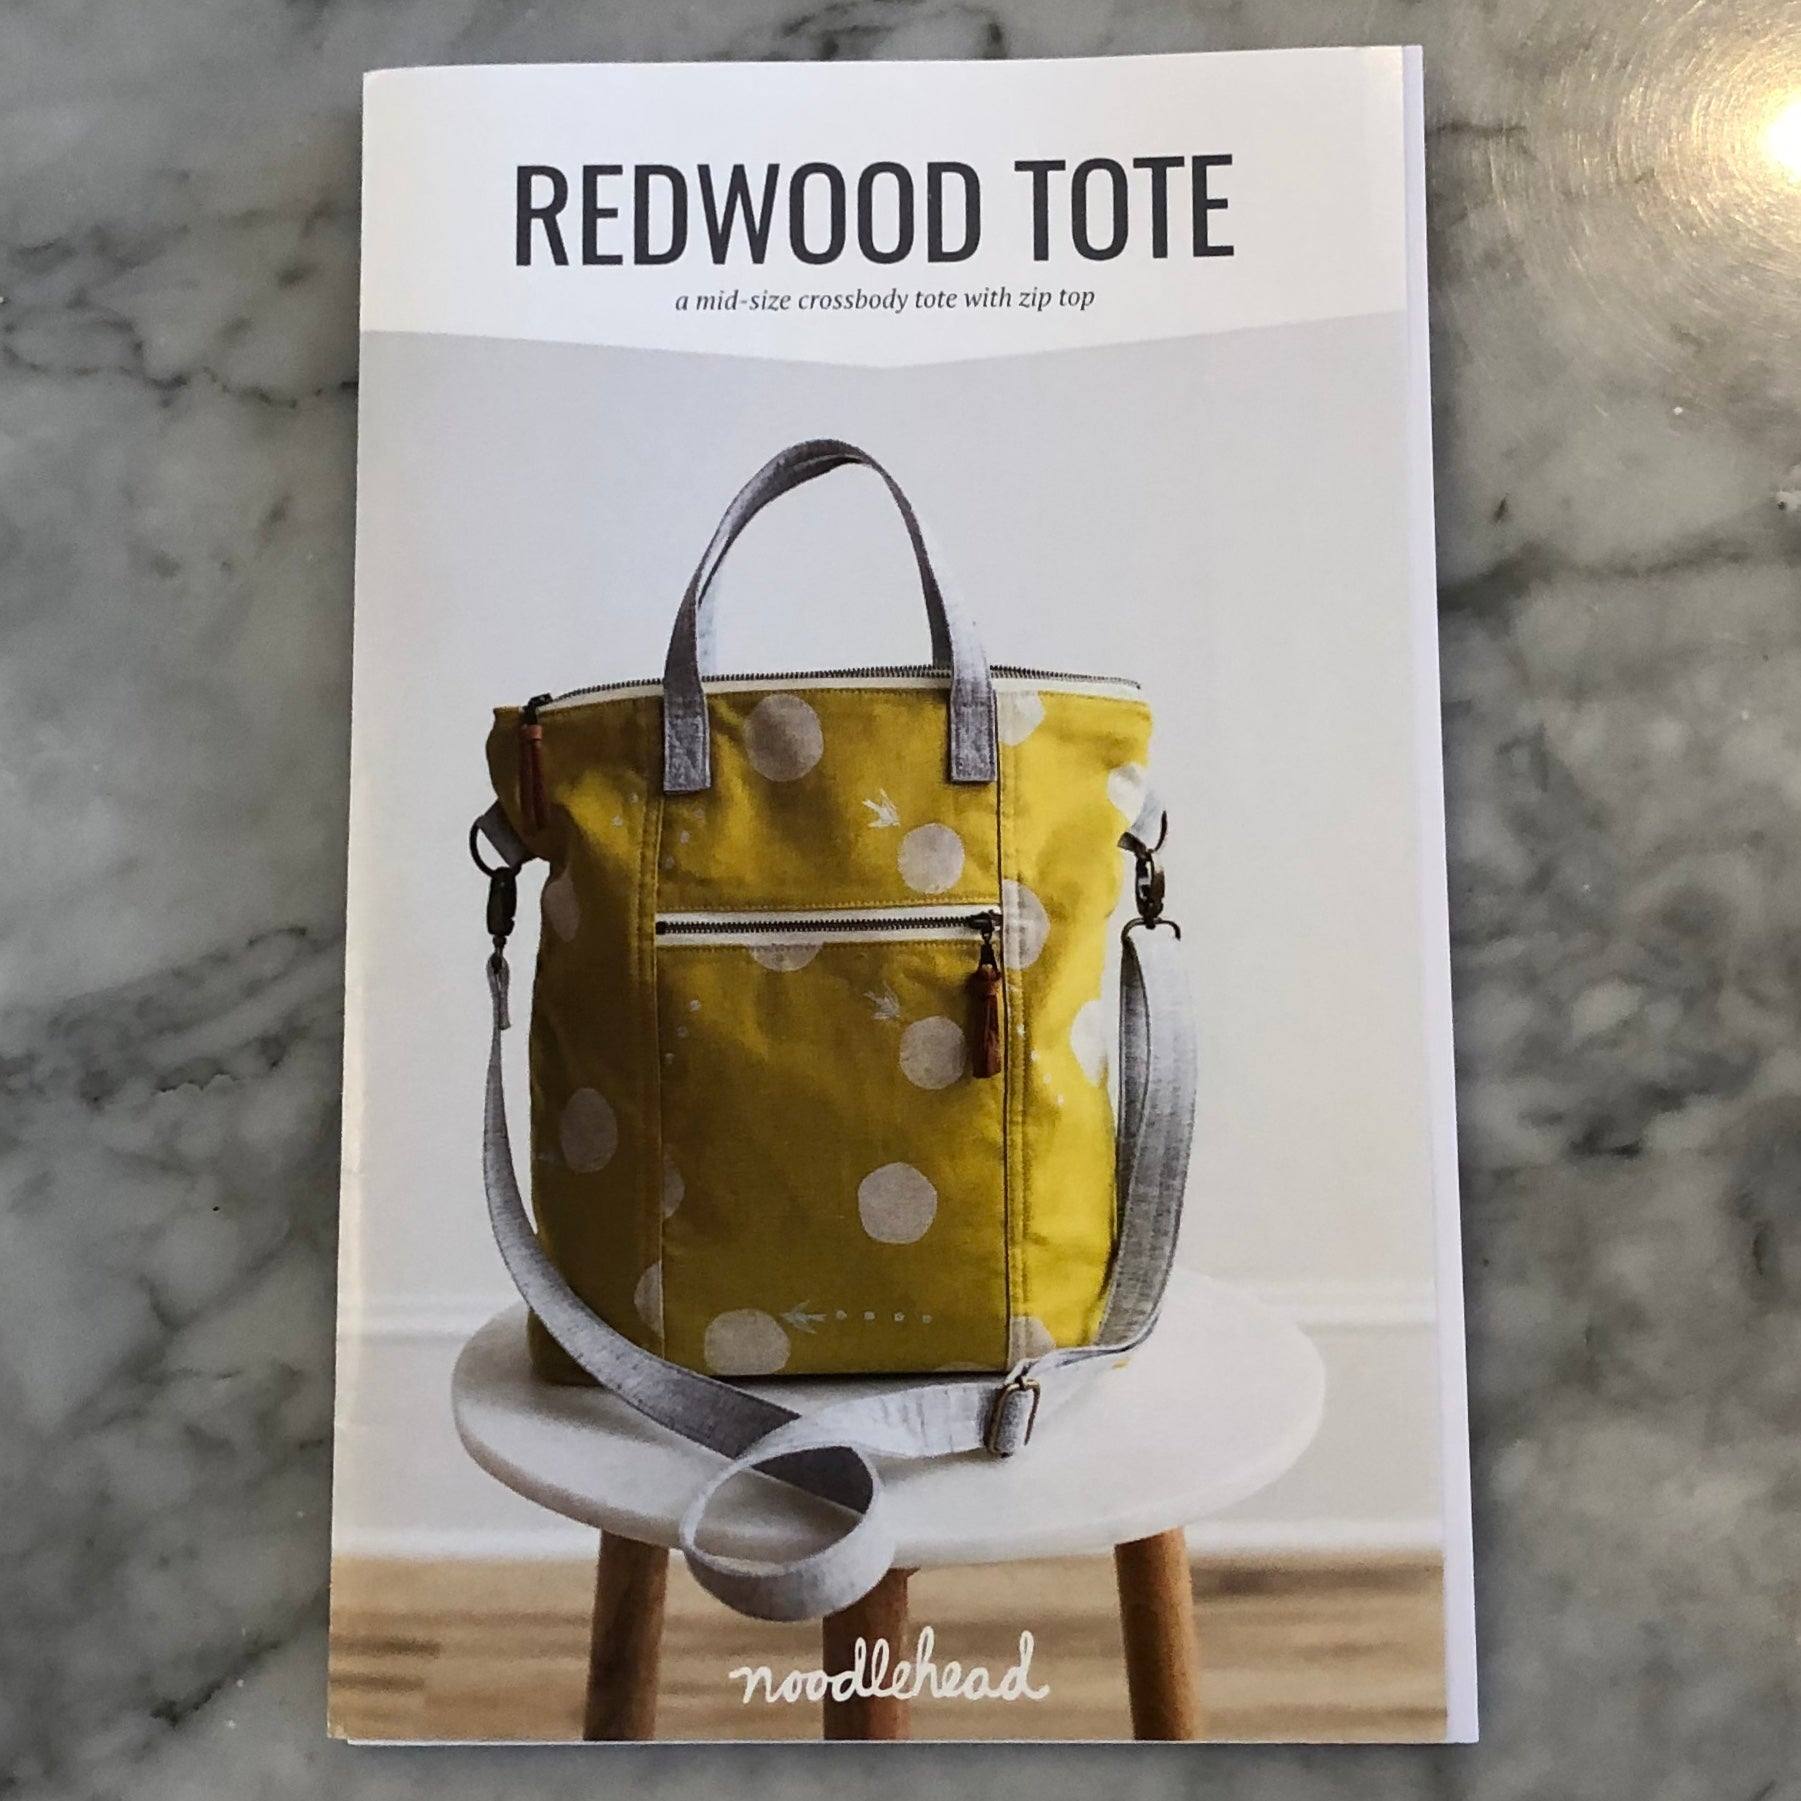 Sewing: Redwood Tote 01/05 + 01/12